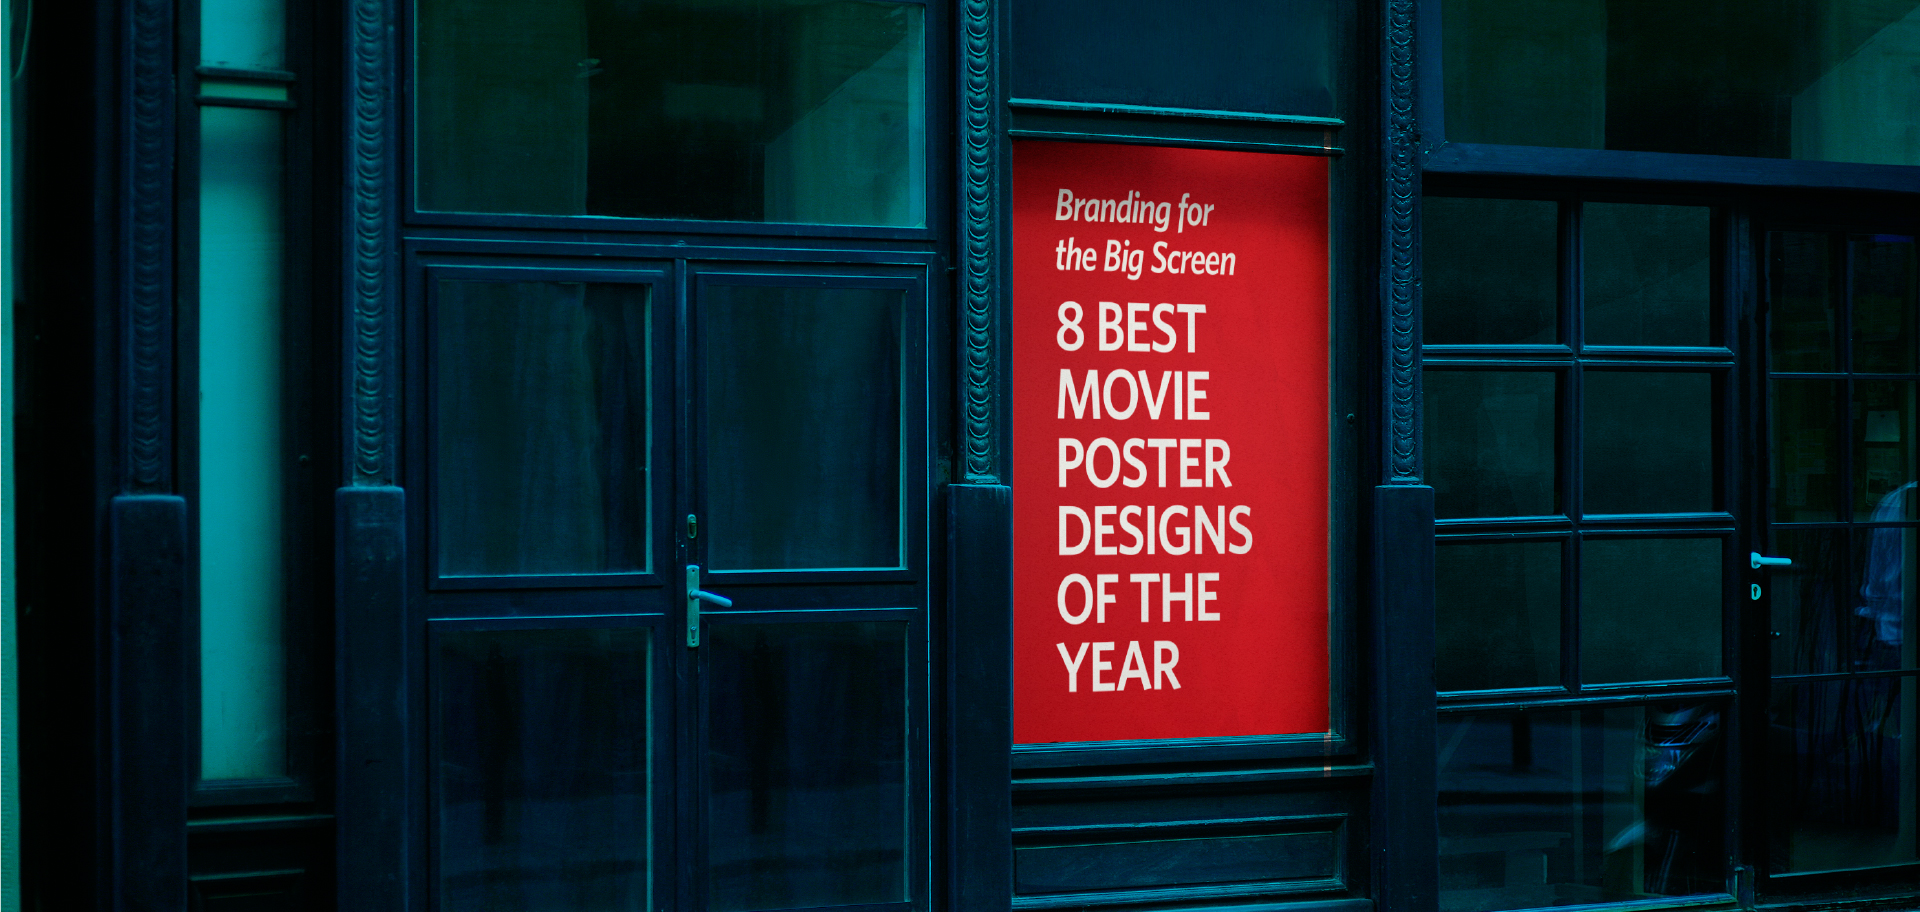 Kettle Fire Creative Branding on the Big Screen: 8 Best Movie Poster Designs of the Year